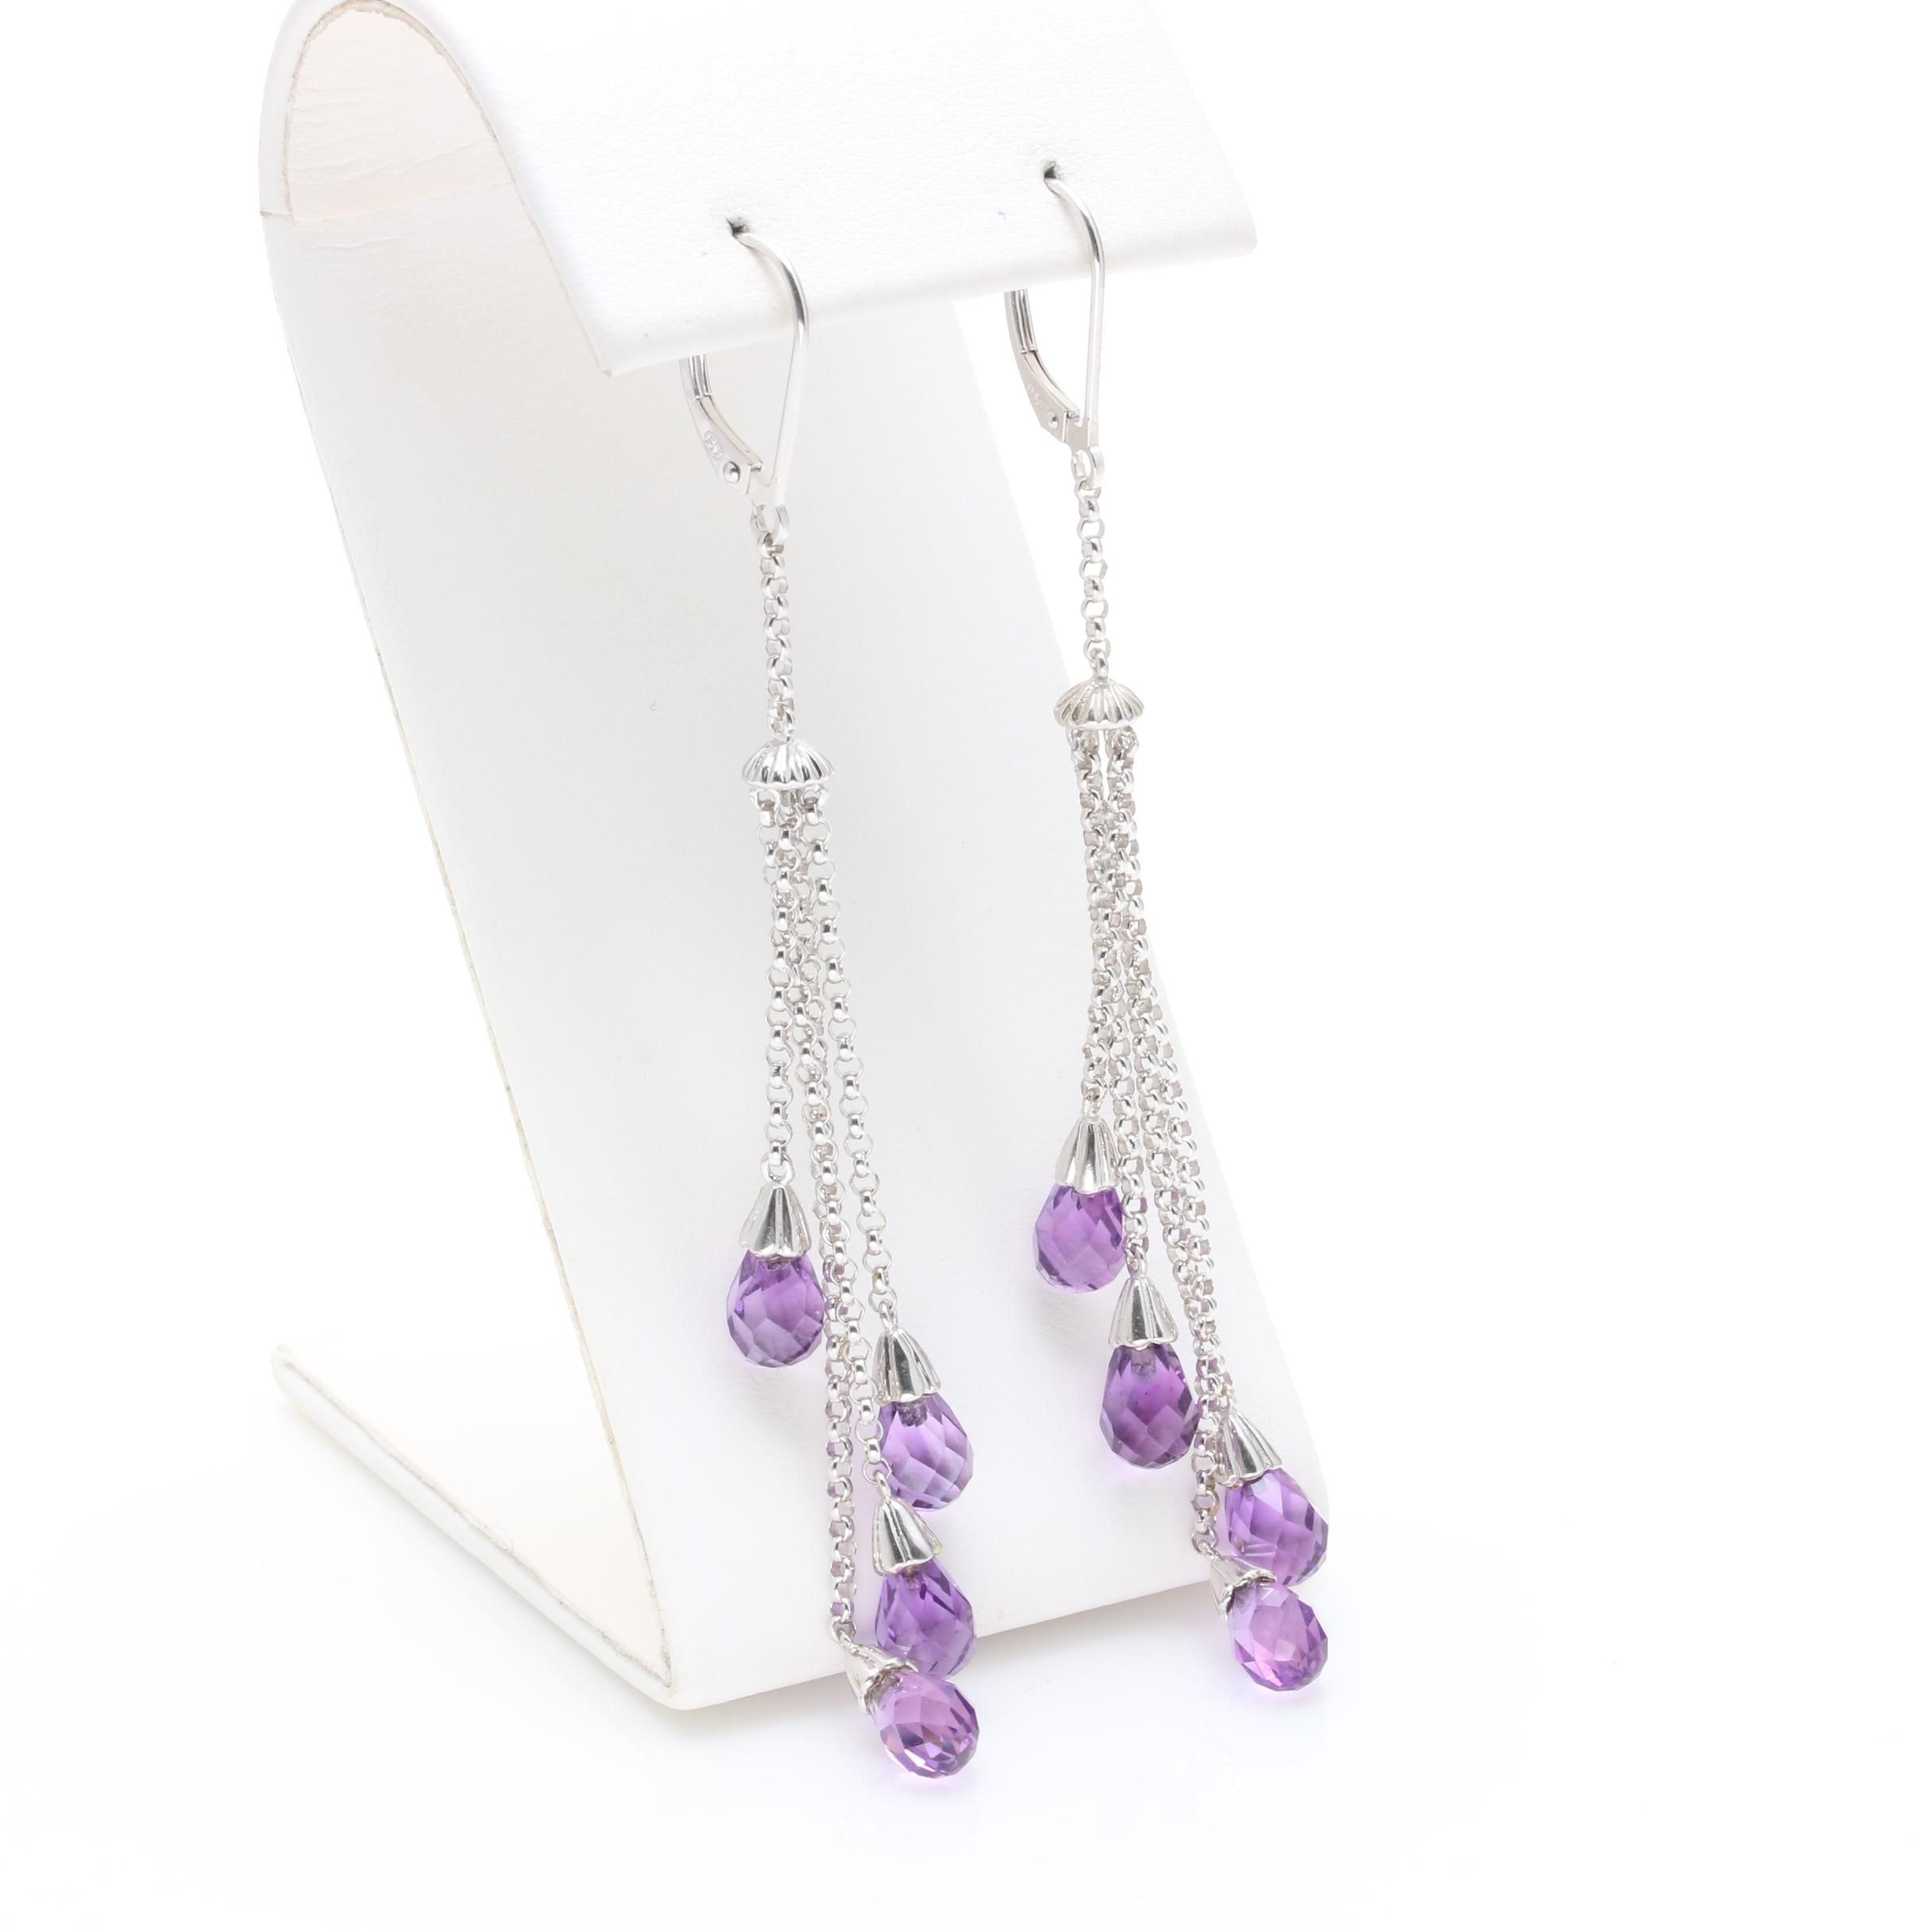 10K White Gold Amethyst Drop Earrings